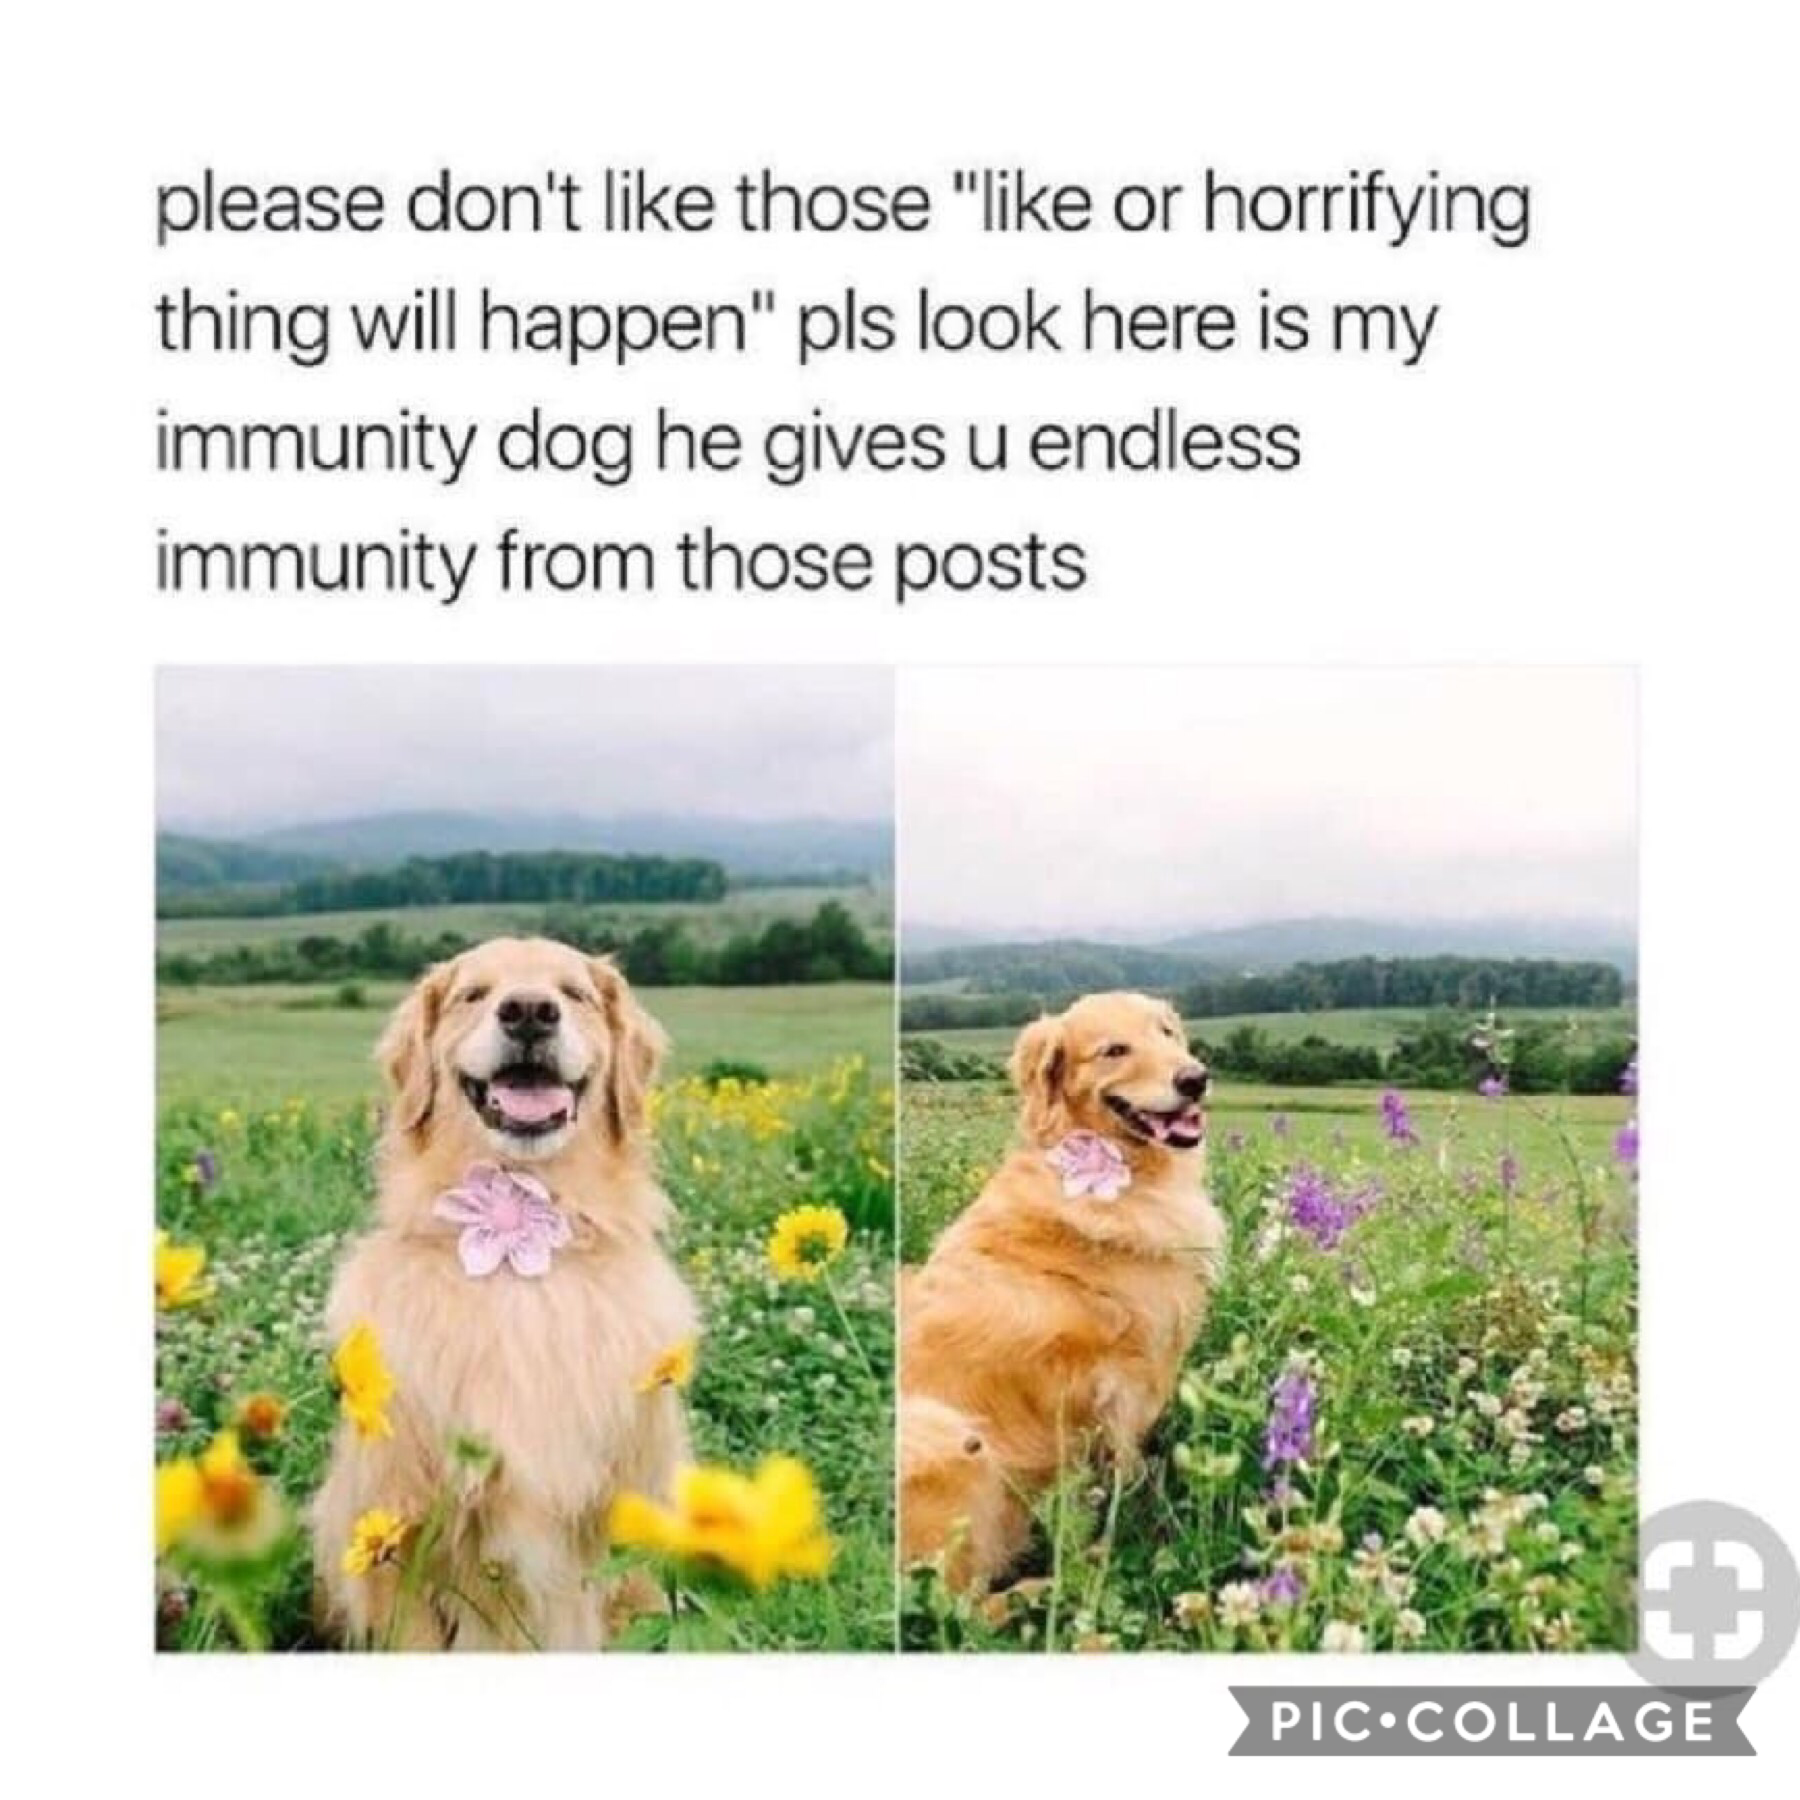 Save me immunity dog😅 My account is such an oxymoron😅😓💗